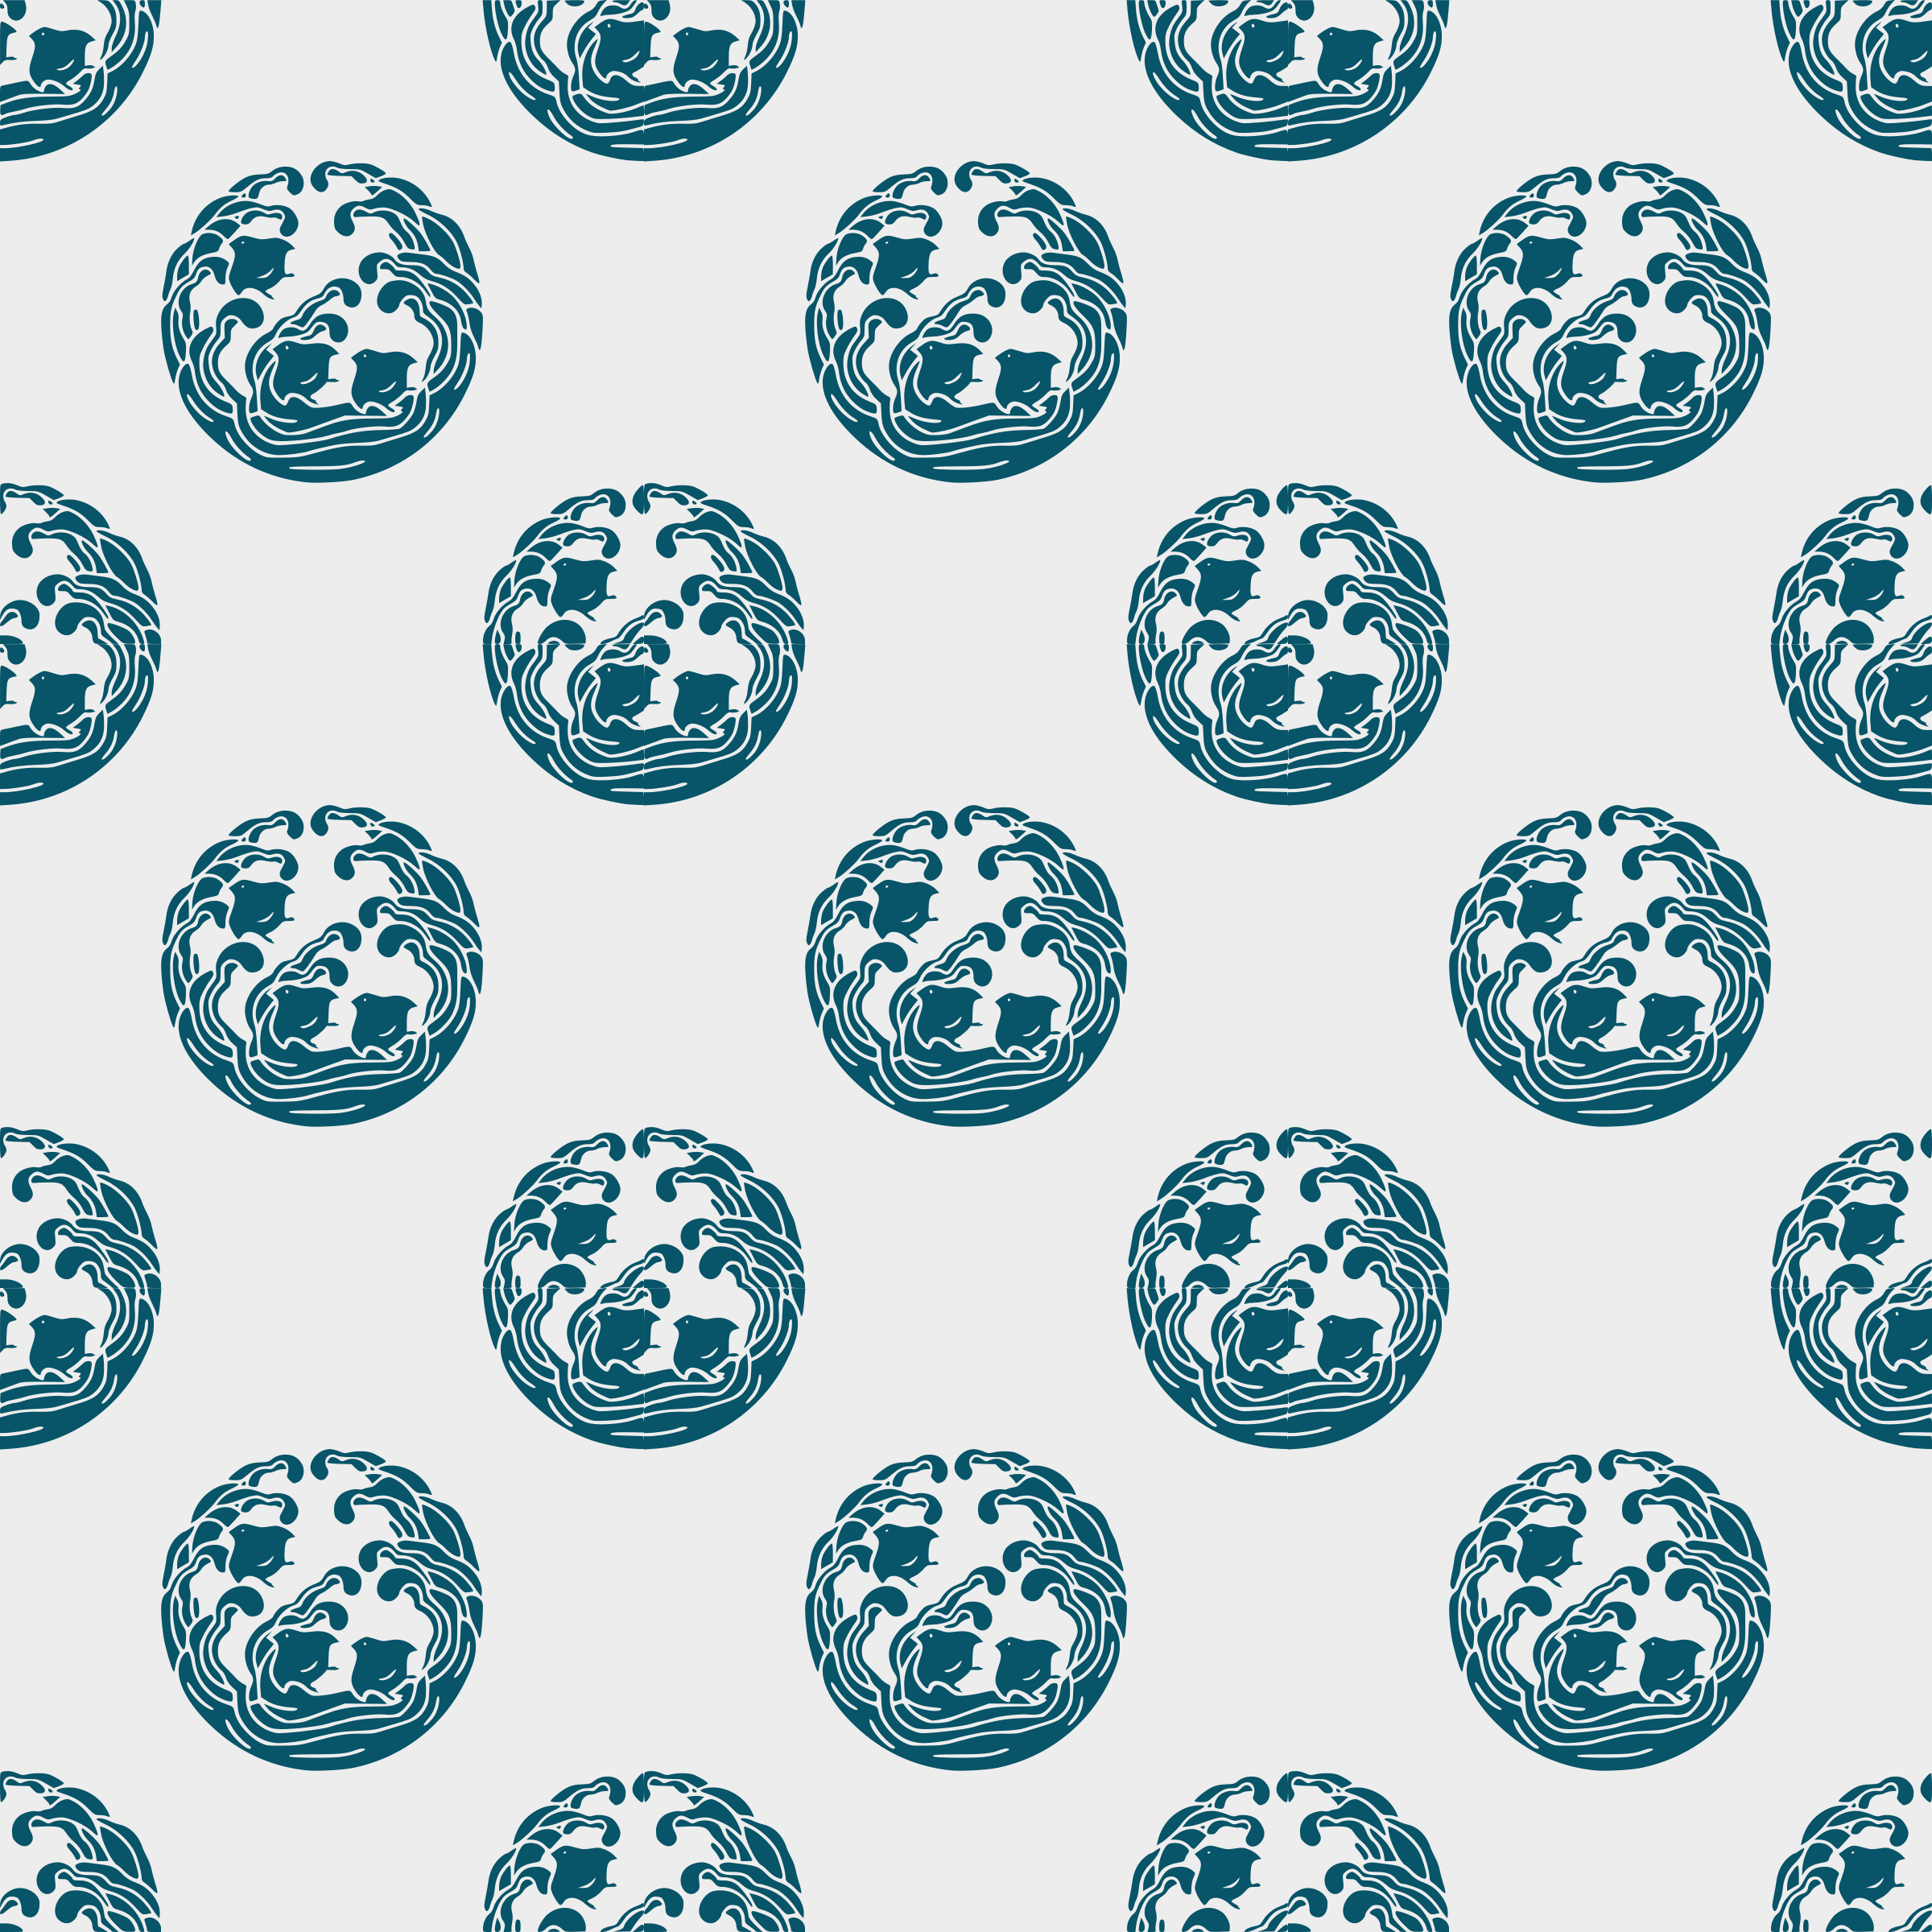 Wave and plover -seamless pattern by yamachem